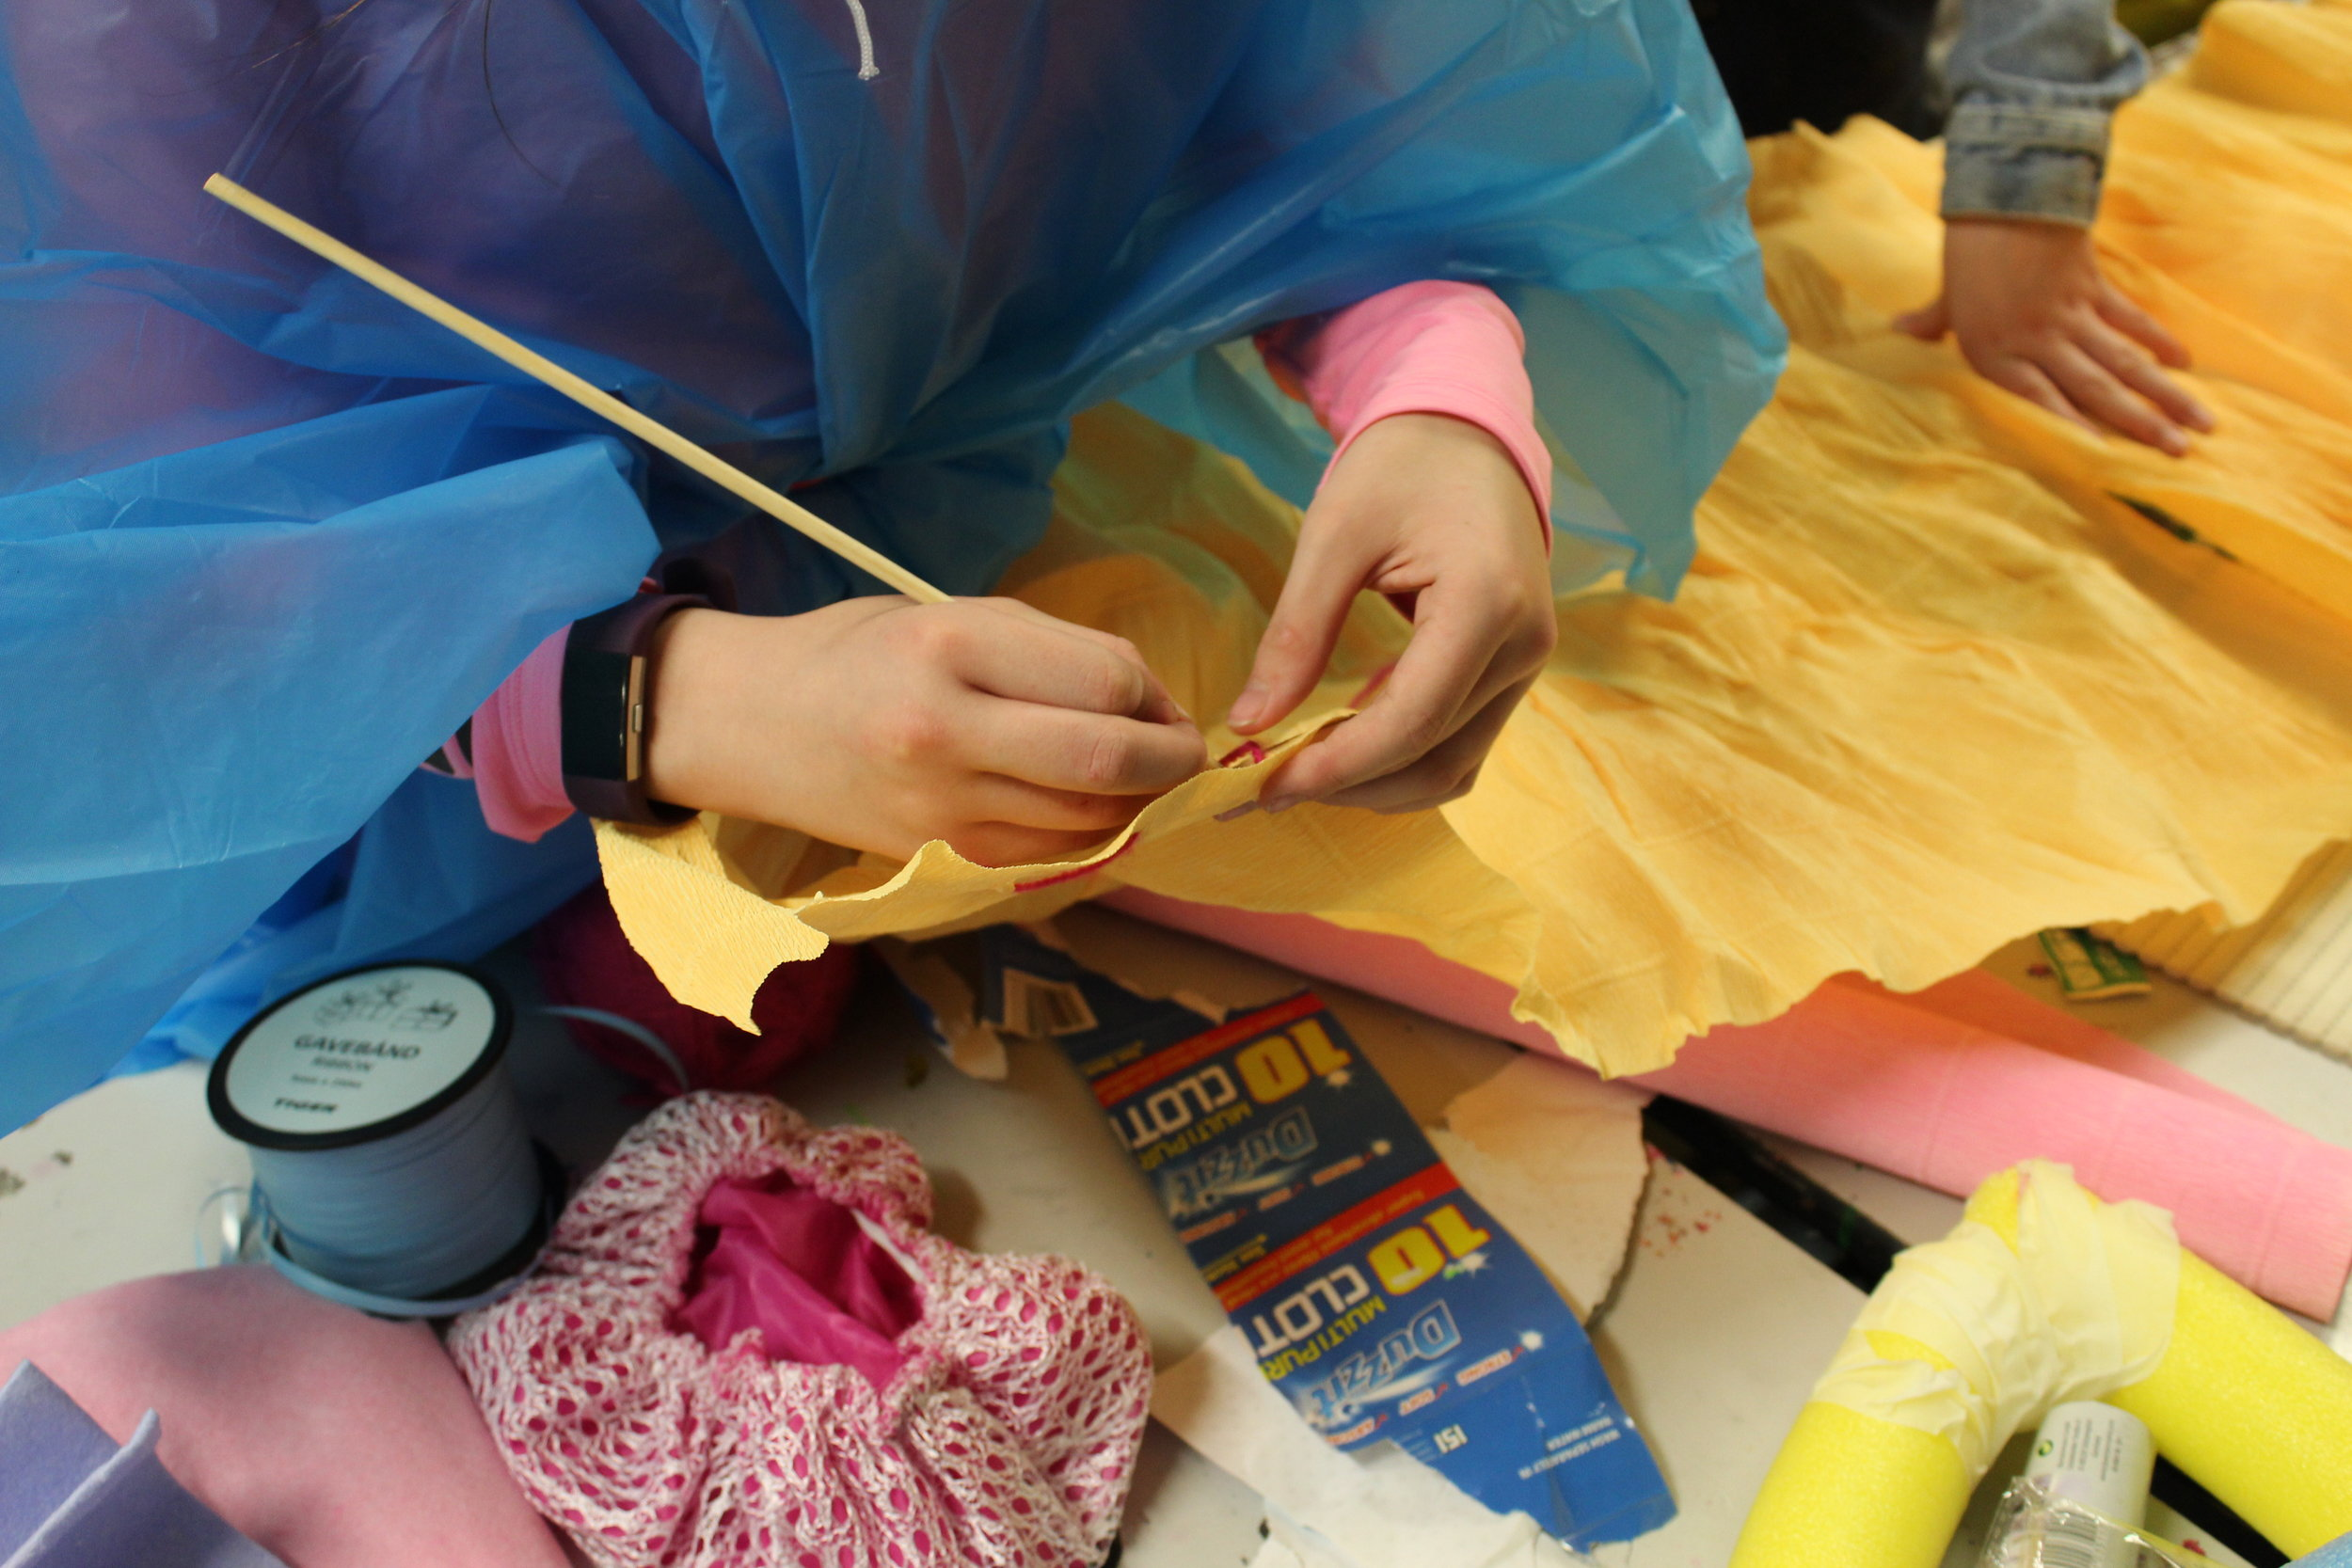 Using a skewer to weave fabrics together